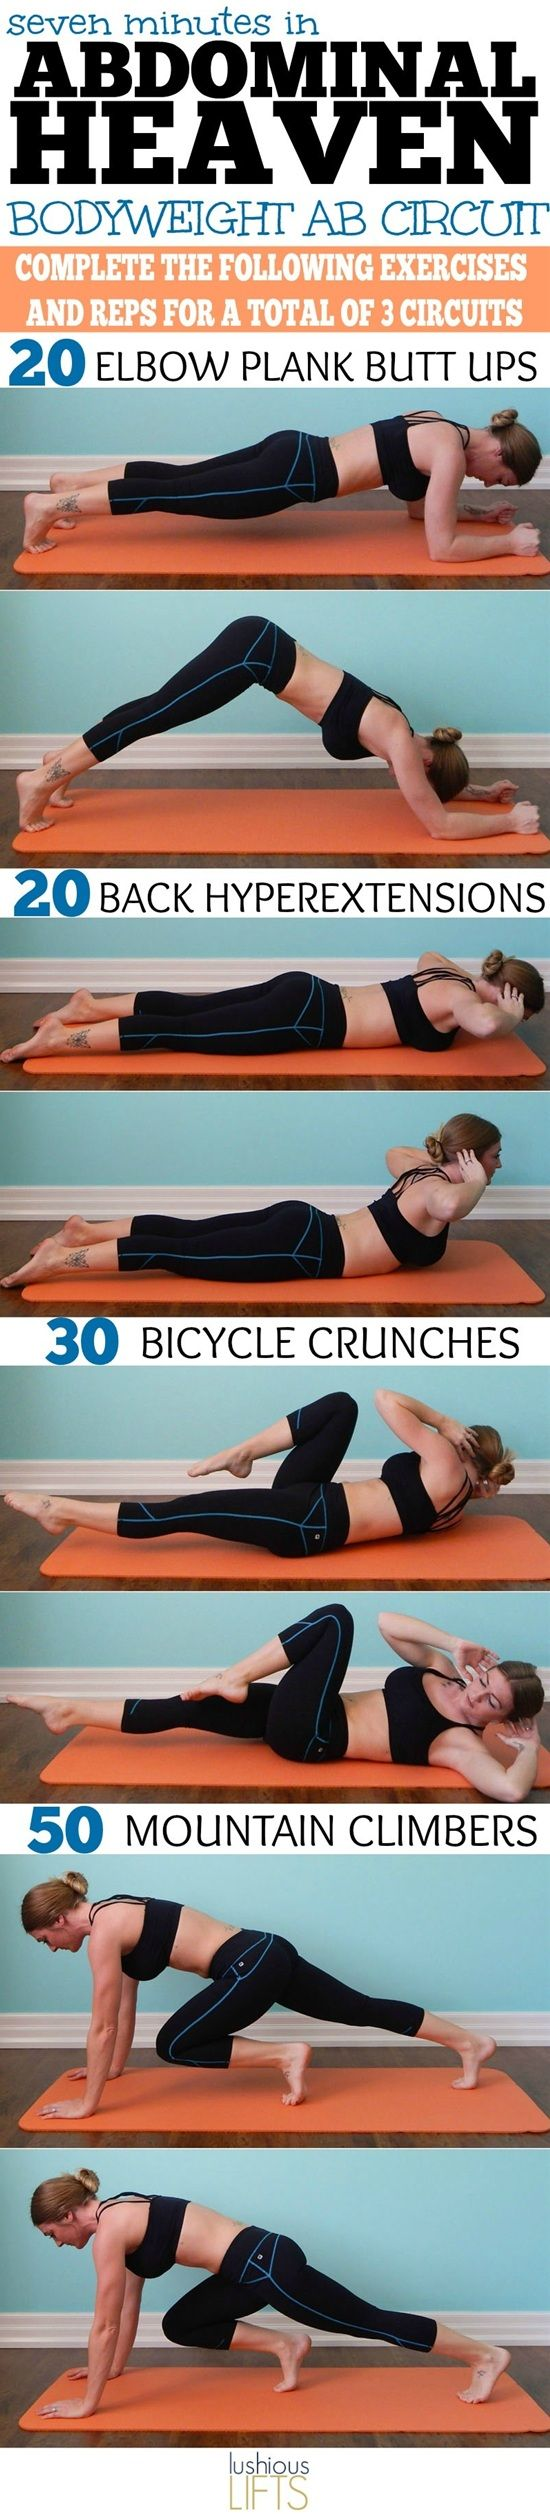 Its doesnt have to be hard to have those 6 packs, start with these awesome workouts.